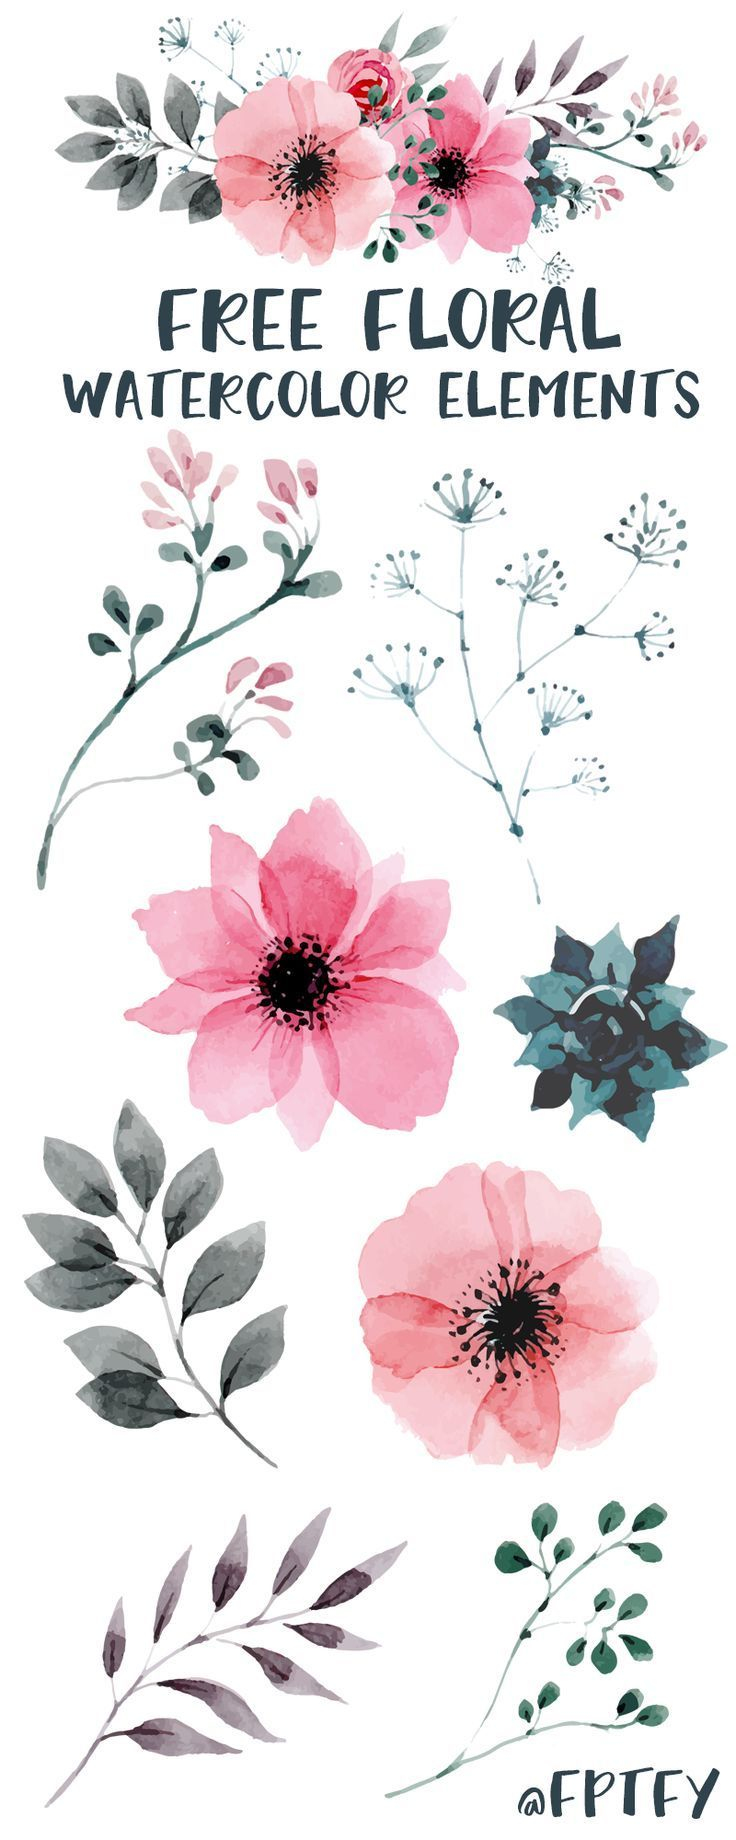 Free Watercolor Floral Elements Elements Flora 15awesome